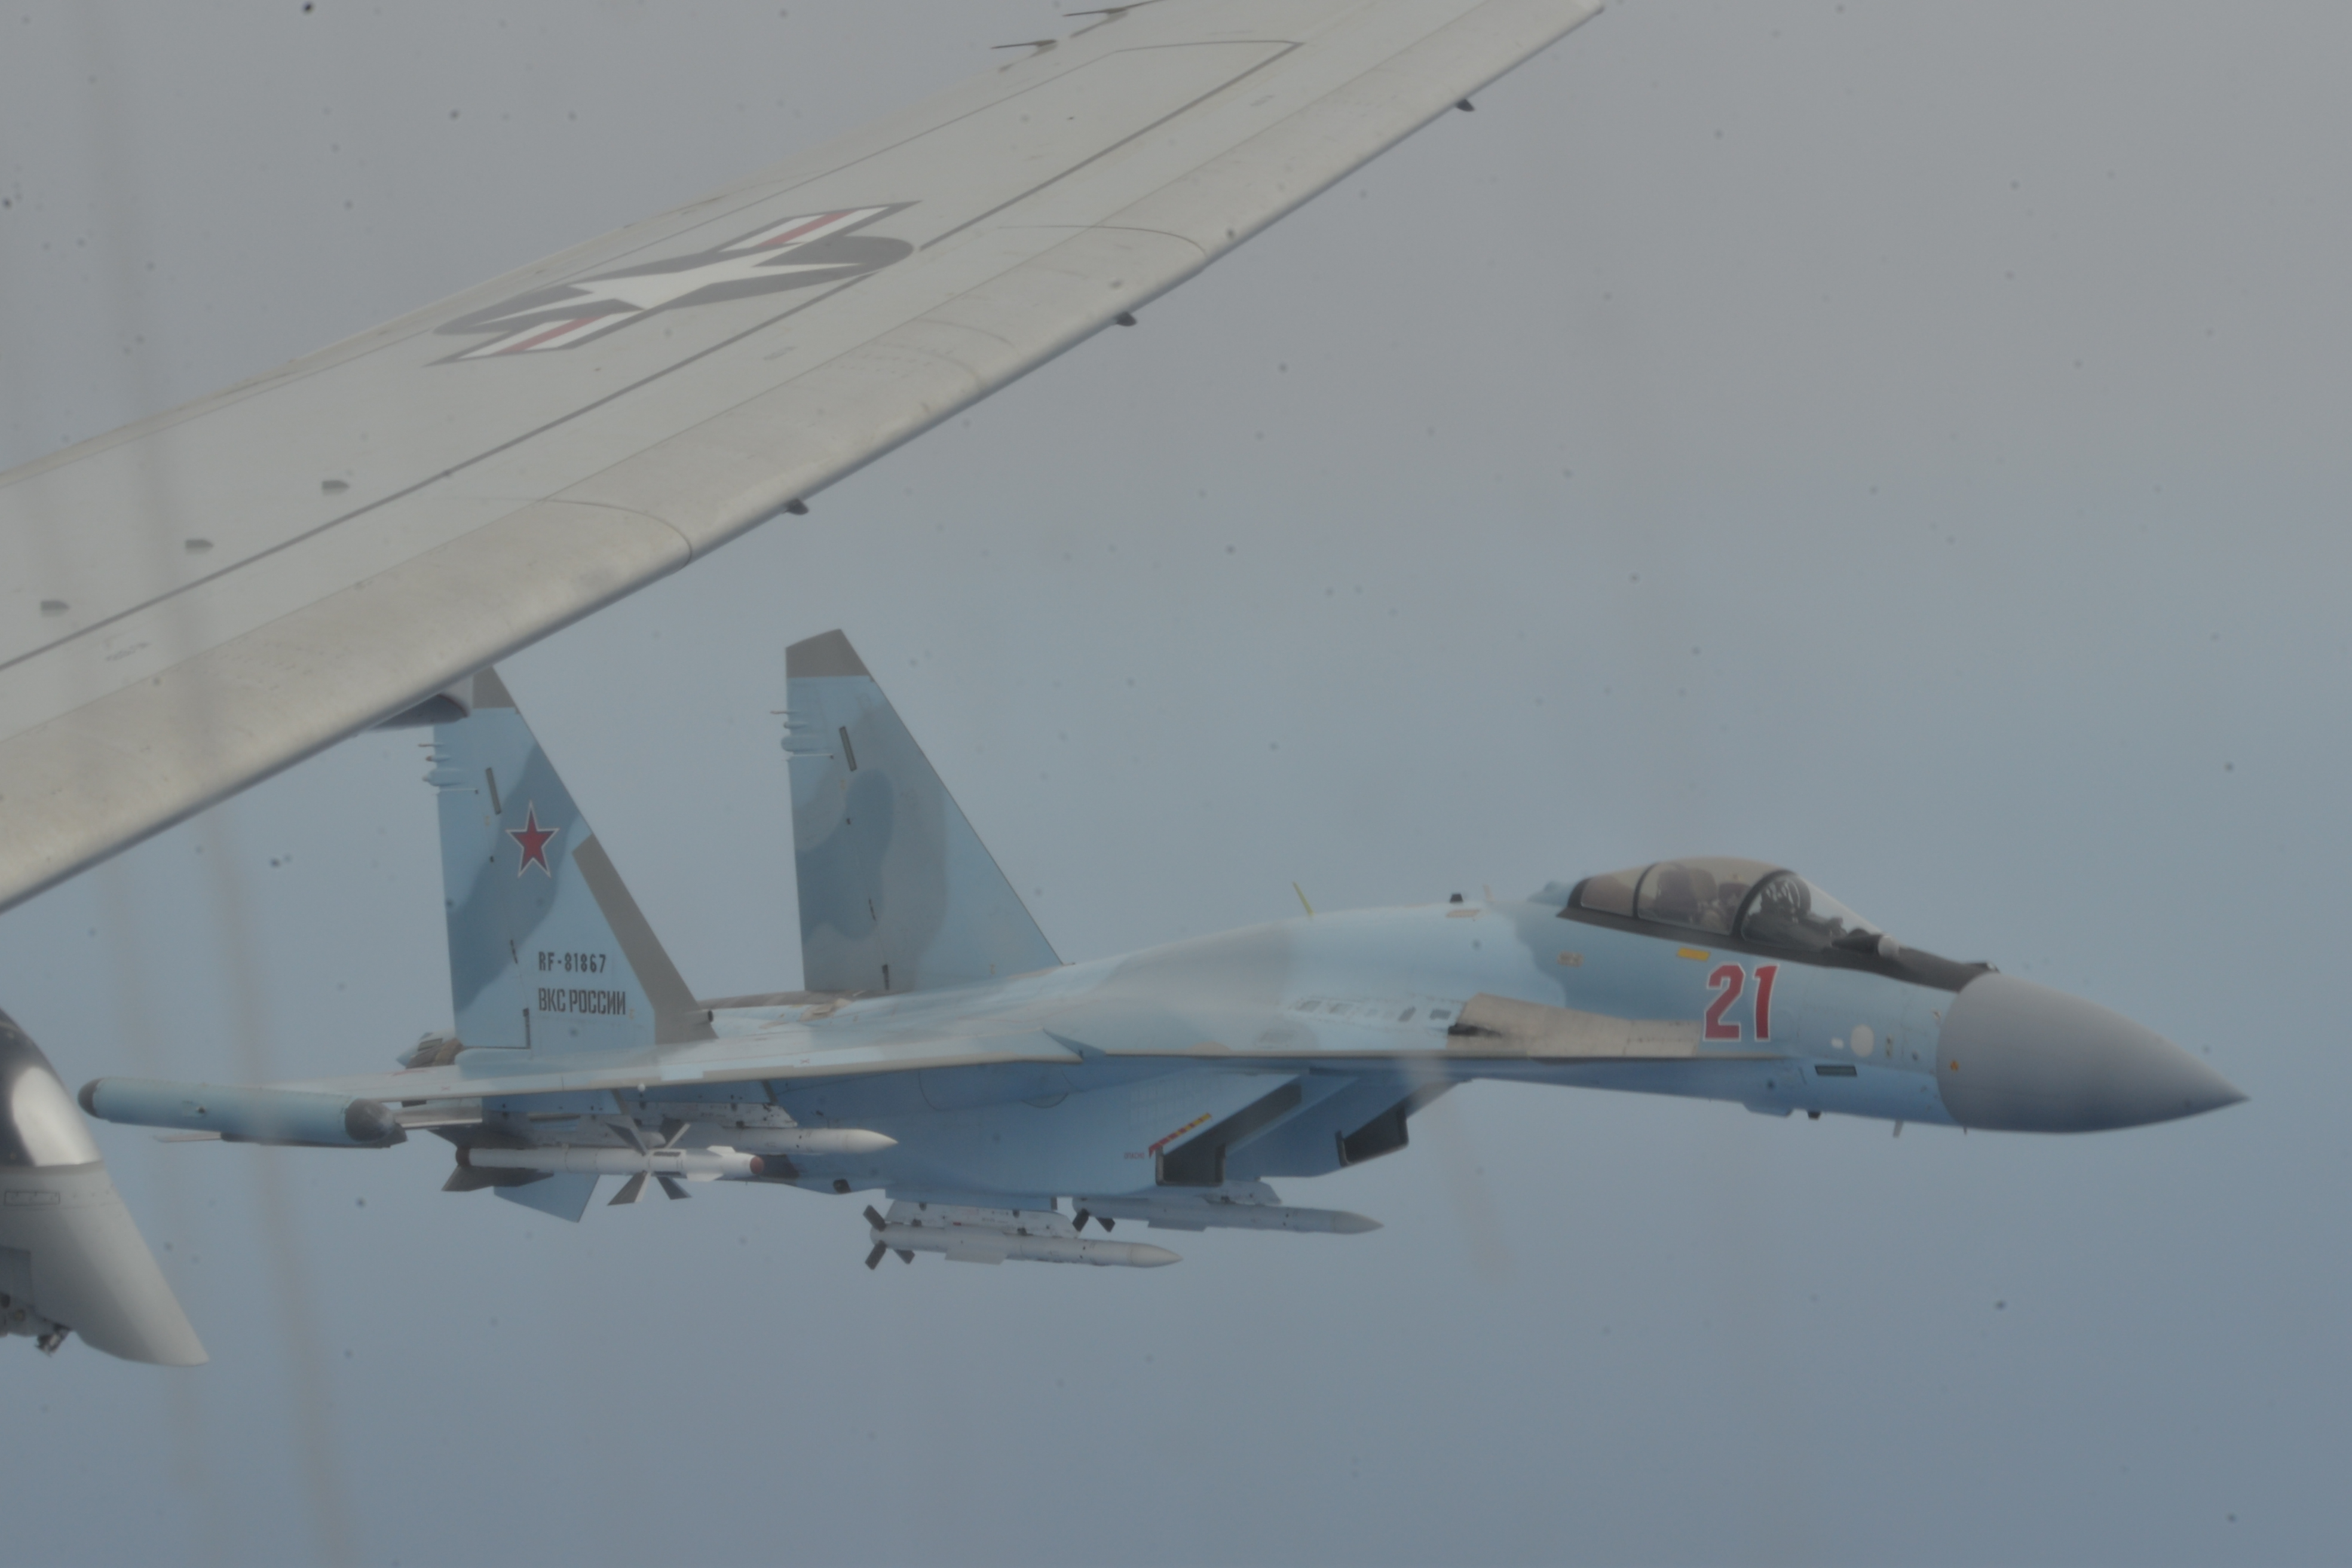 Two Russian Fighter Jets Intercept U.S. Reconnaissance Plane Over the Mediterranean Sea Provoking Navy Fury at 'Unsafe' Maneuver